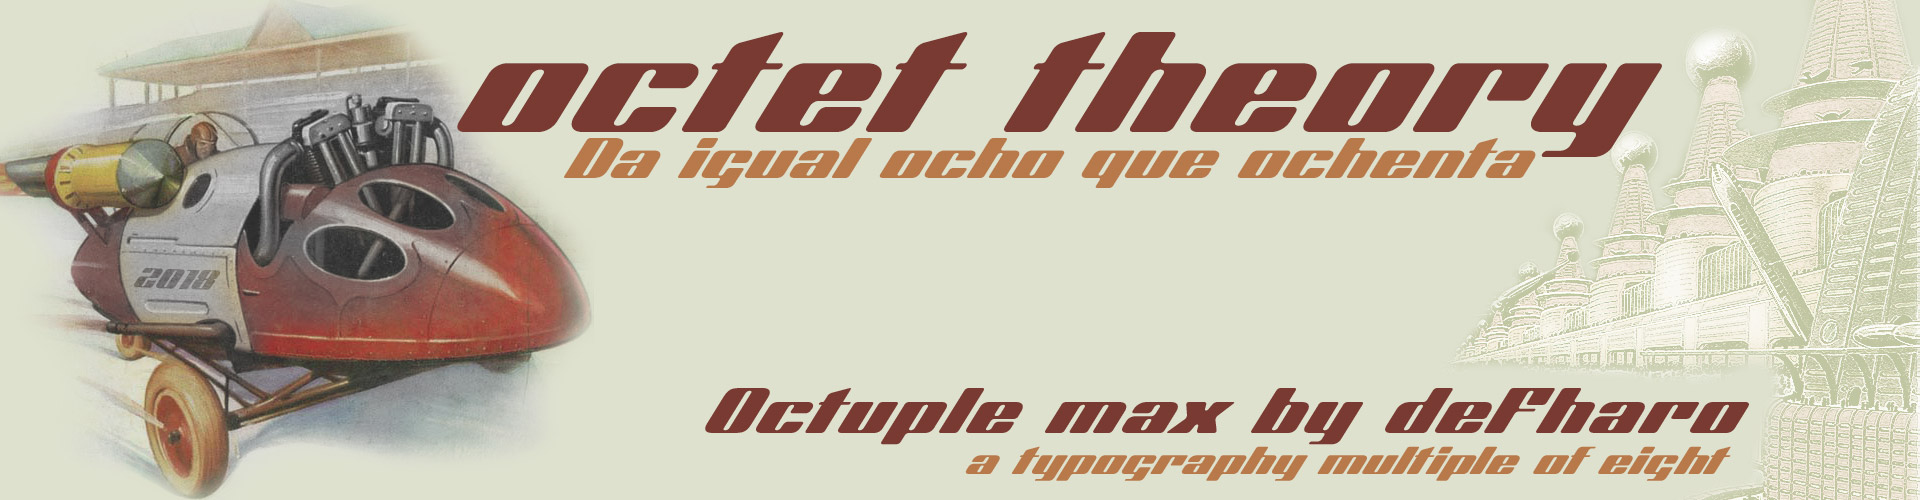 Octuple Max - a typeface multiple of eight